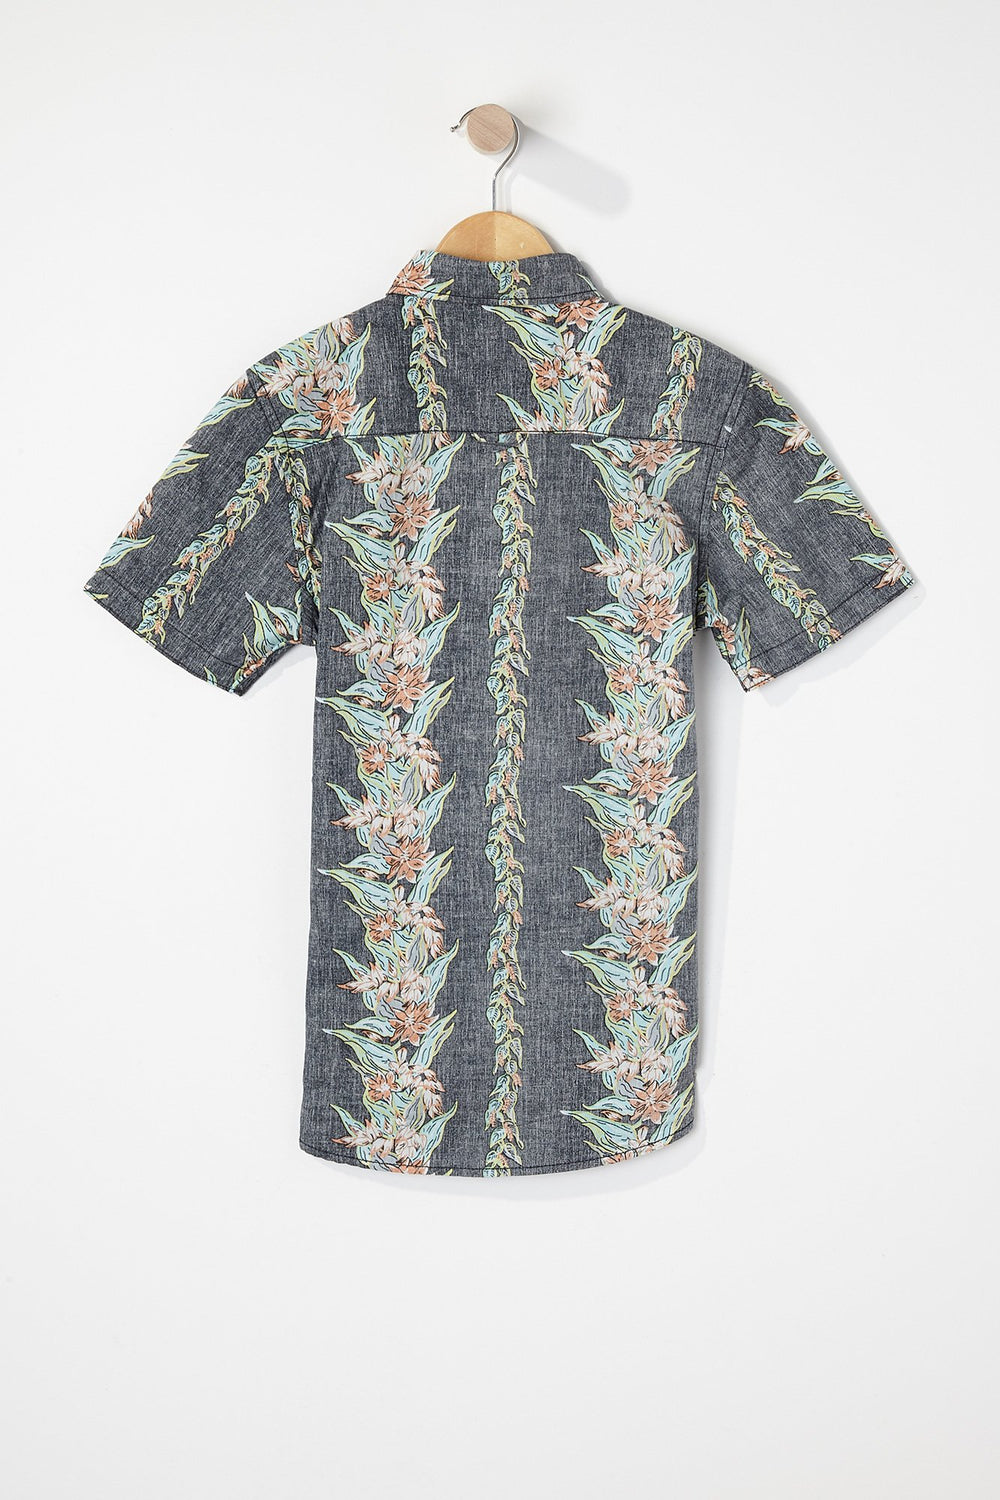 West49 Boys Floral Button-Up Heather Grey